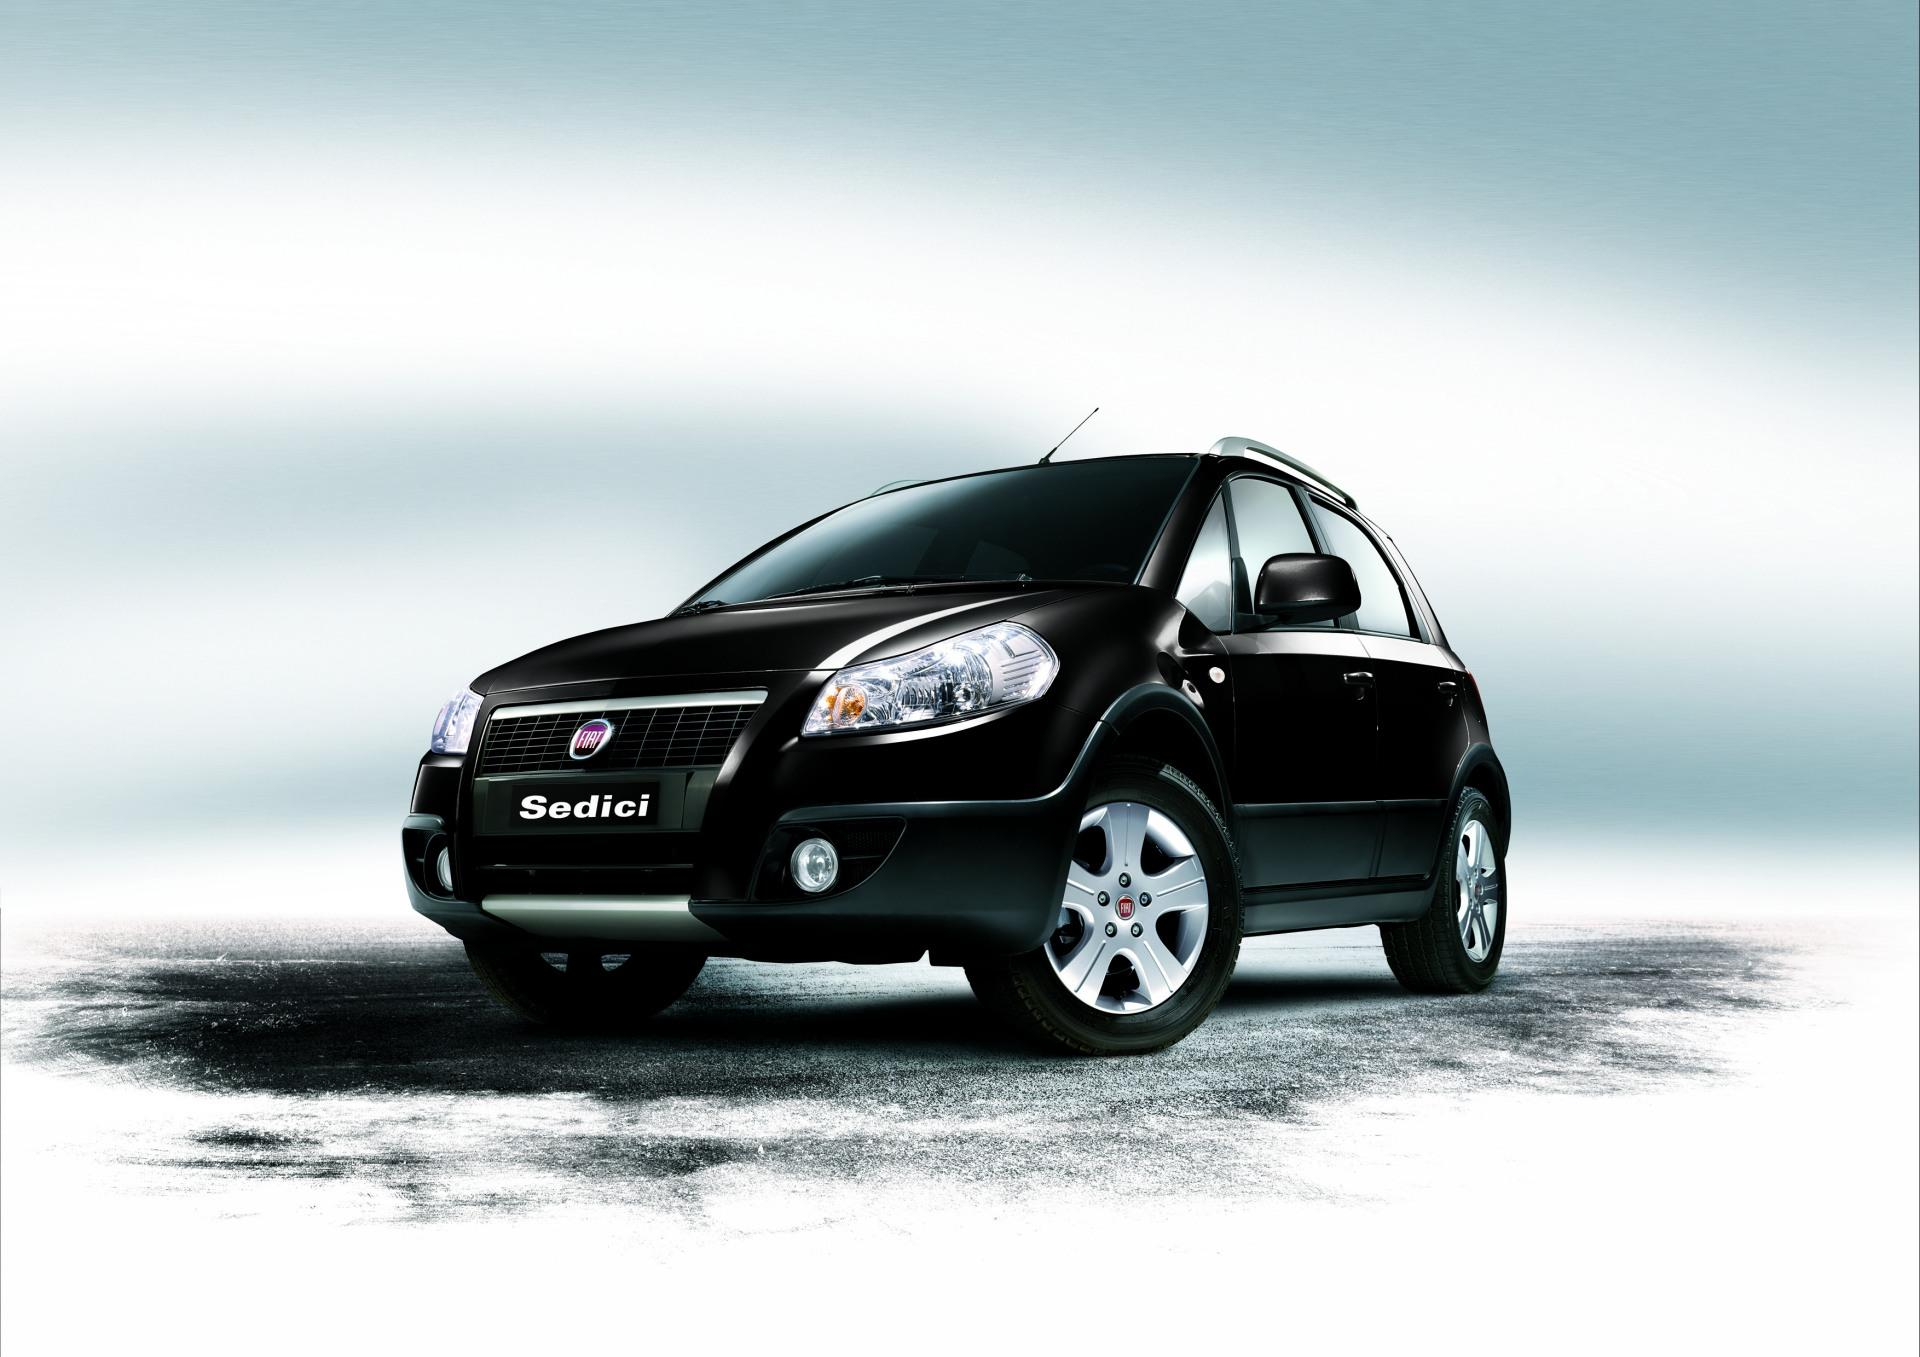 2010 Fiat Sedici News and Information - conceptcarz.com